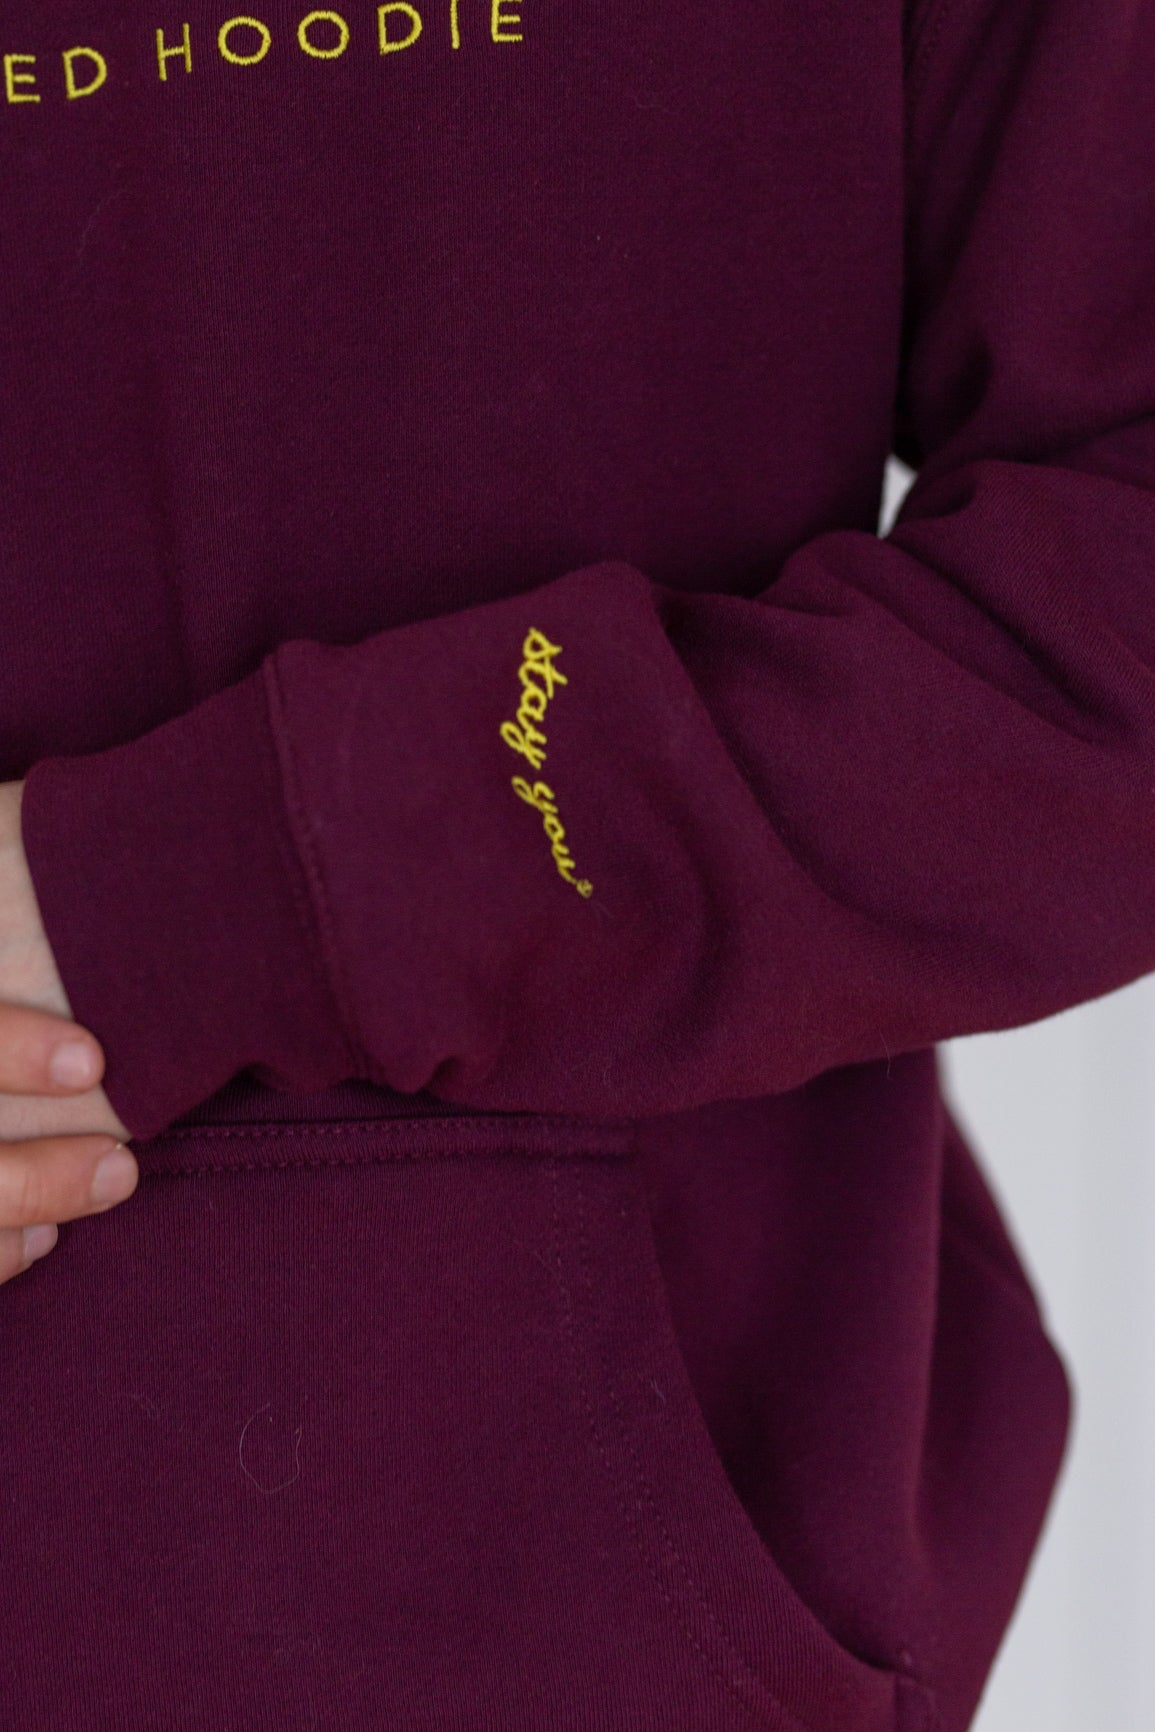 'Stressed Hoodie' in Crisp Red Wine, Embroidered in Vin Jaune Yellow Thread